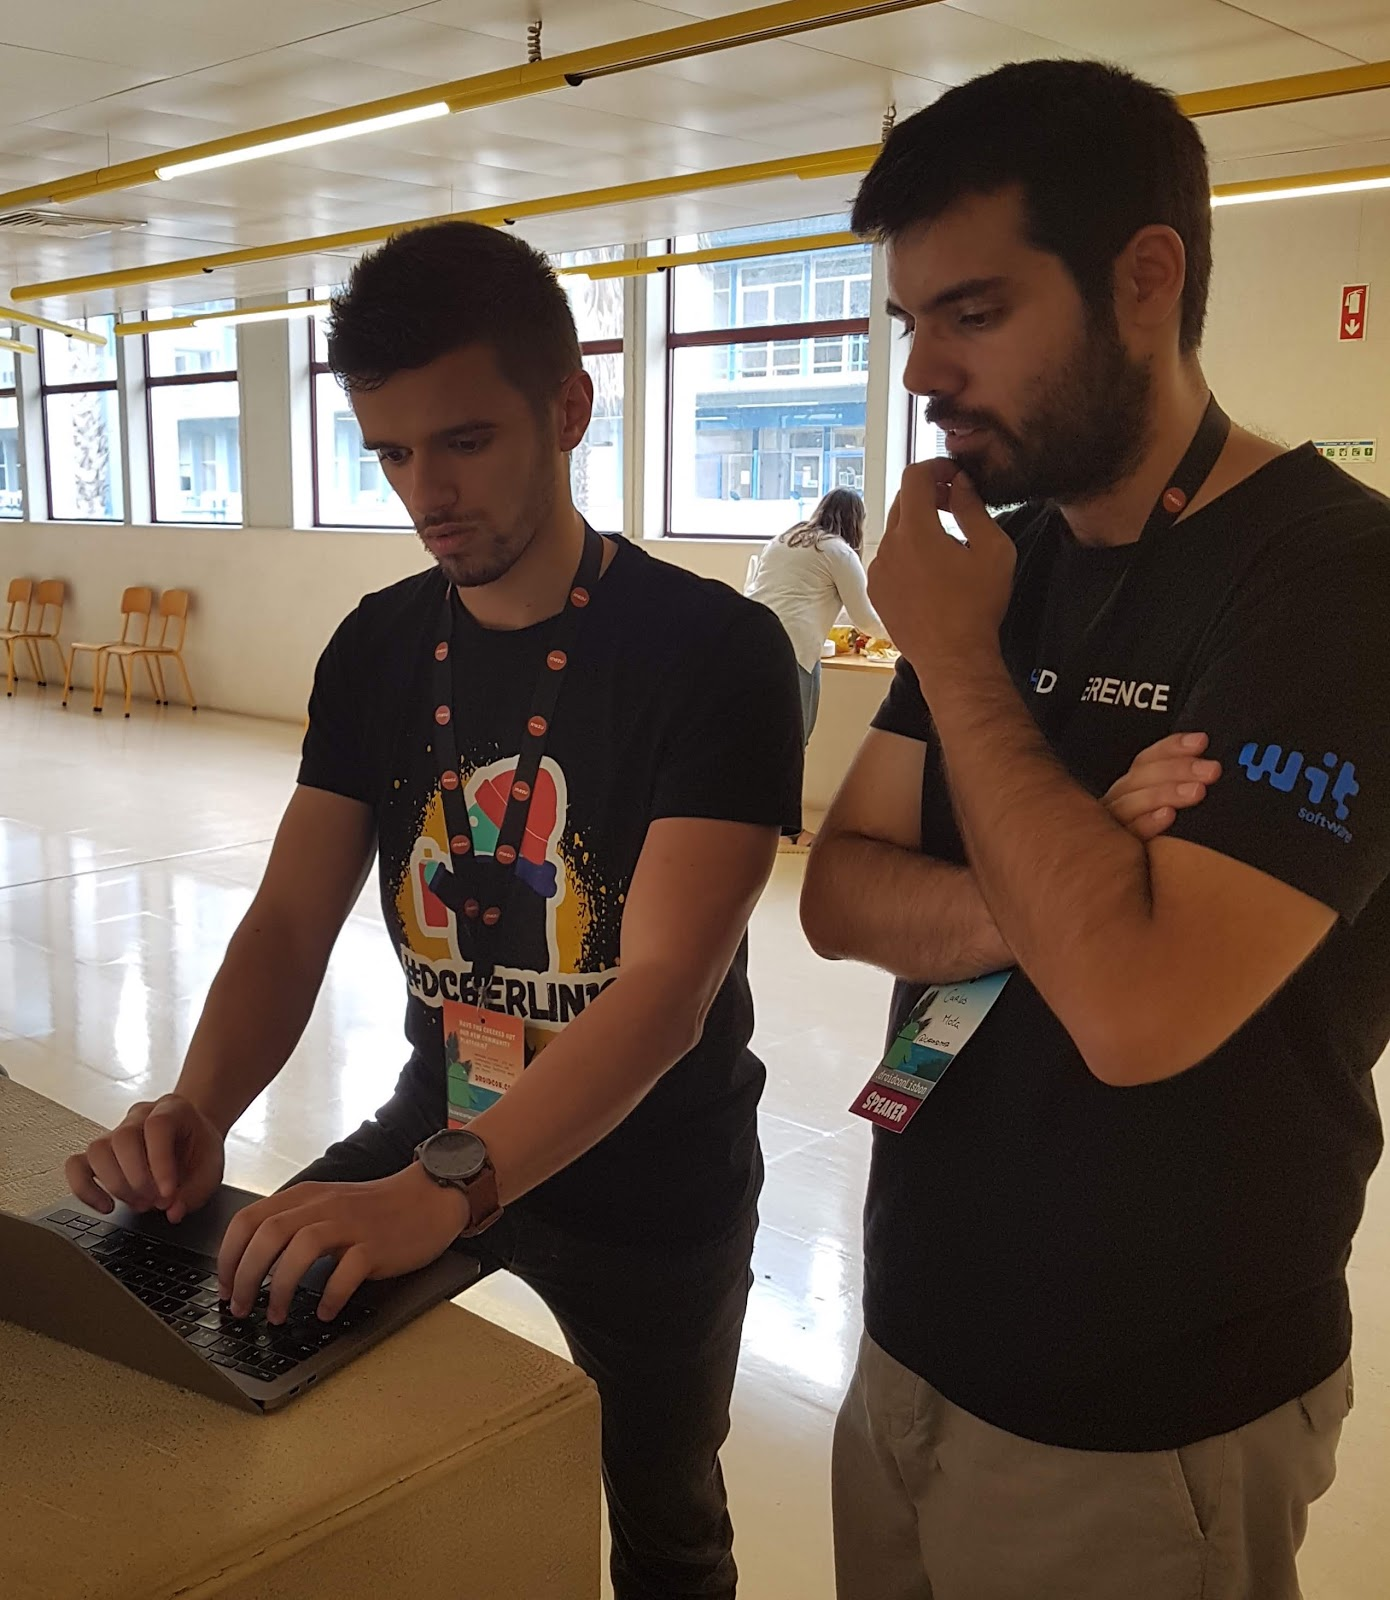 Ricardo on the left with fellow GDG lead planning DevFest Coimbra